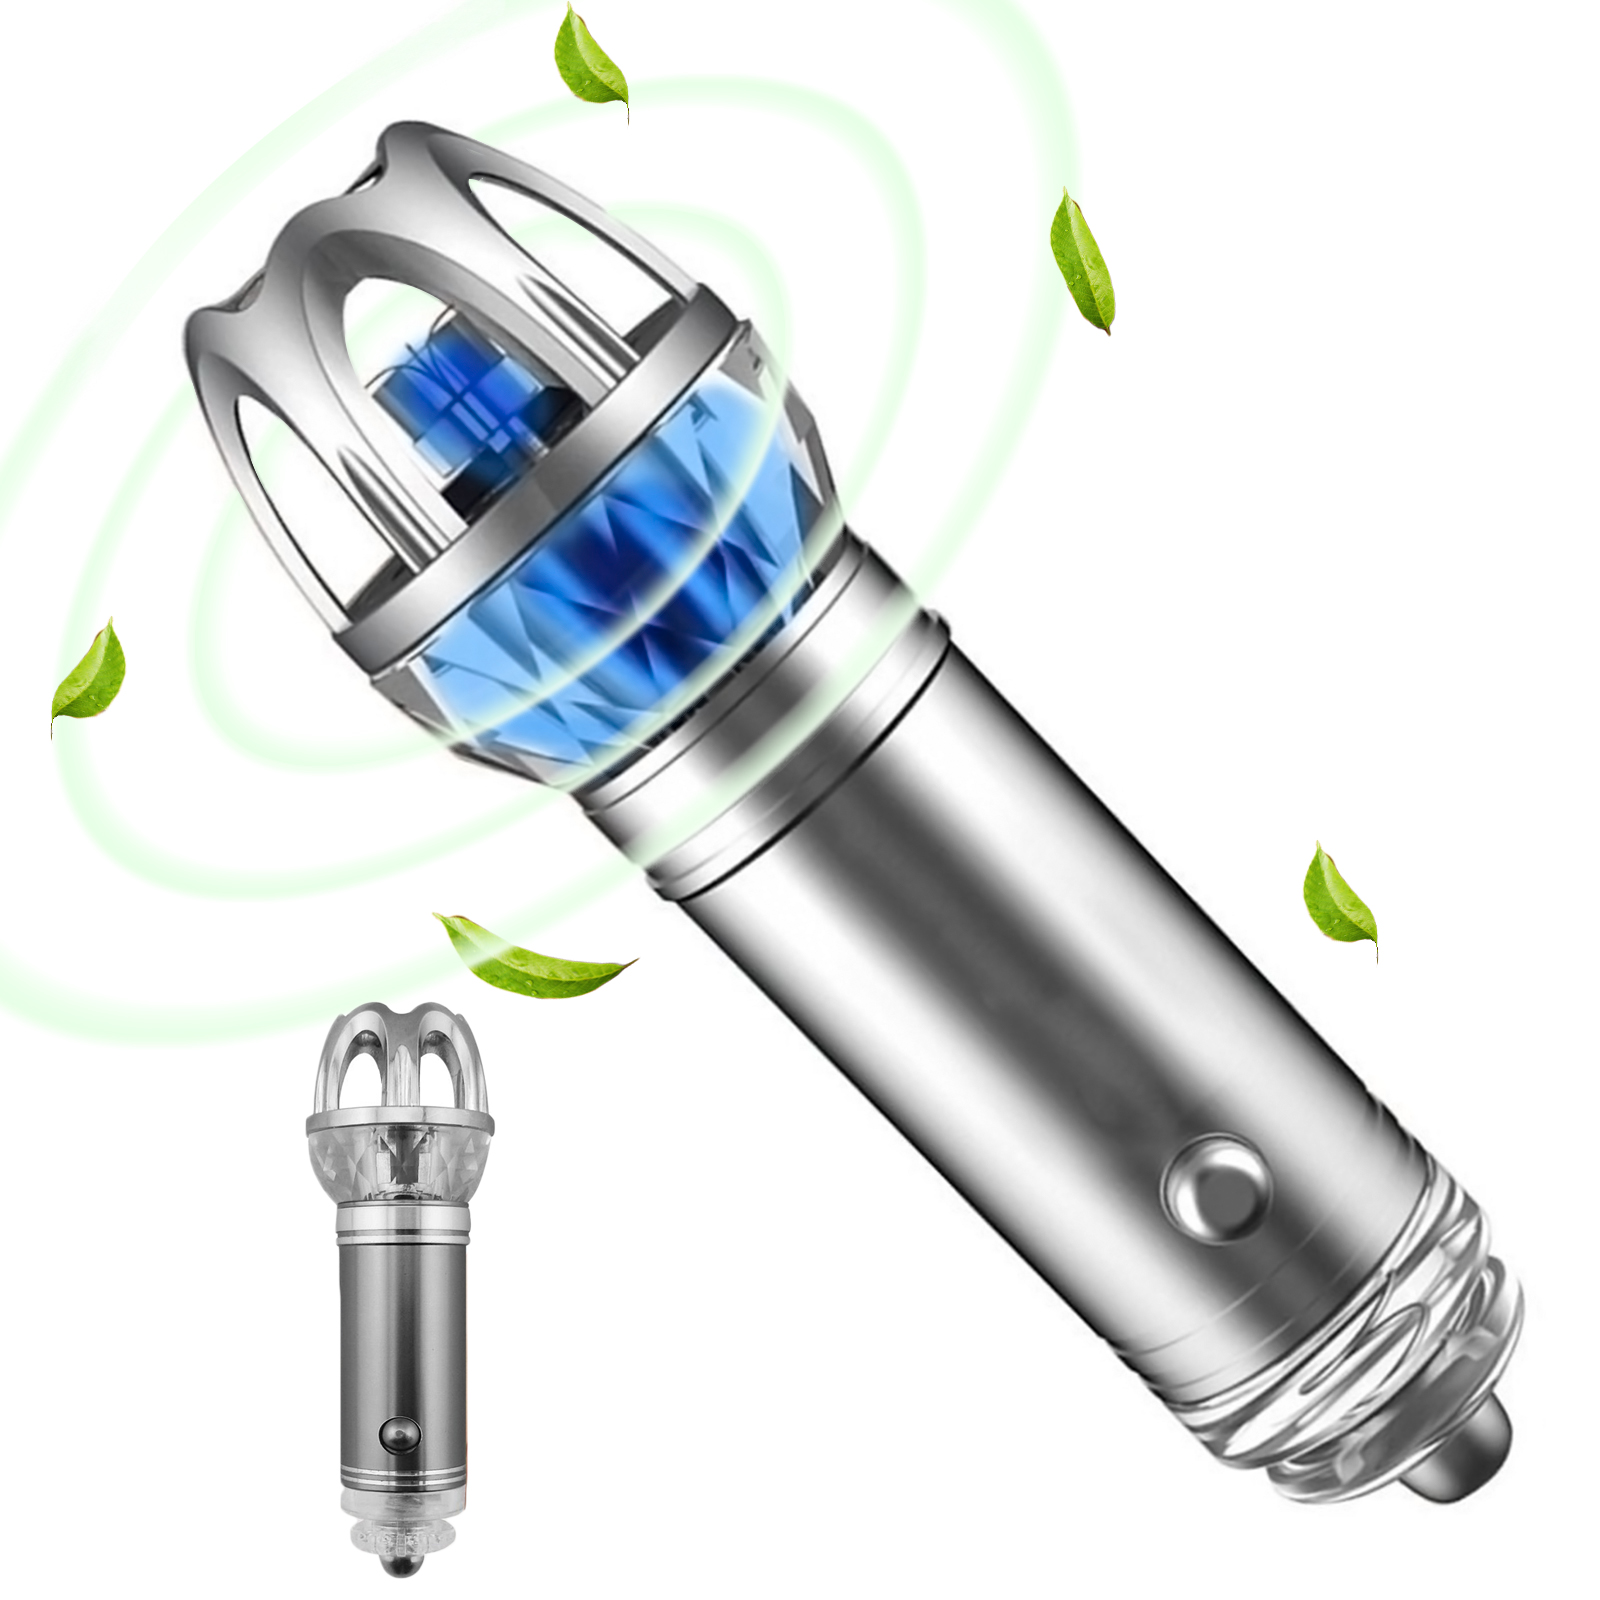 Car Fresh Air Ionic Purifier Oxygen Bar Ozone Ionizer Cleaner Removes Cigarette Smoke Pollen Pollutants NEW